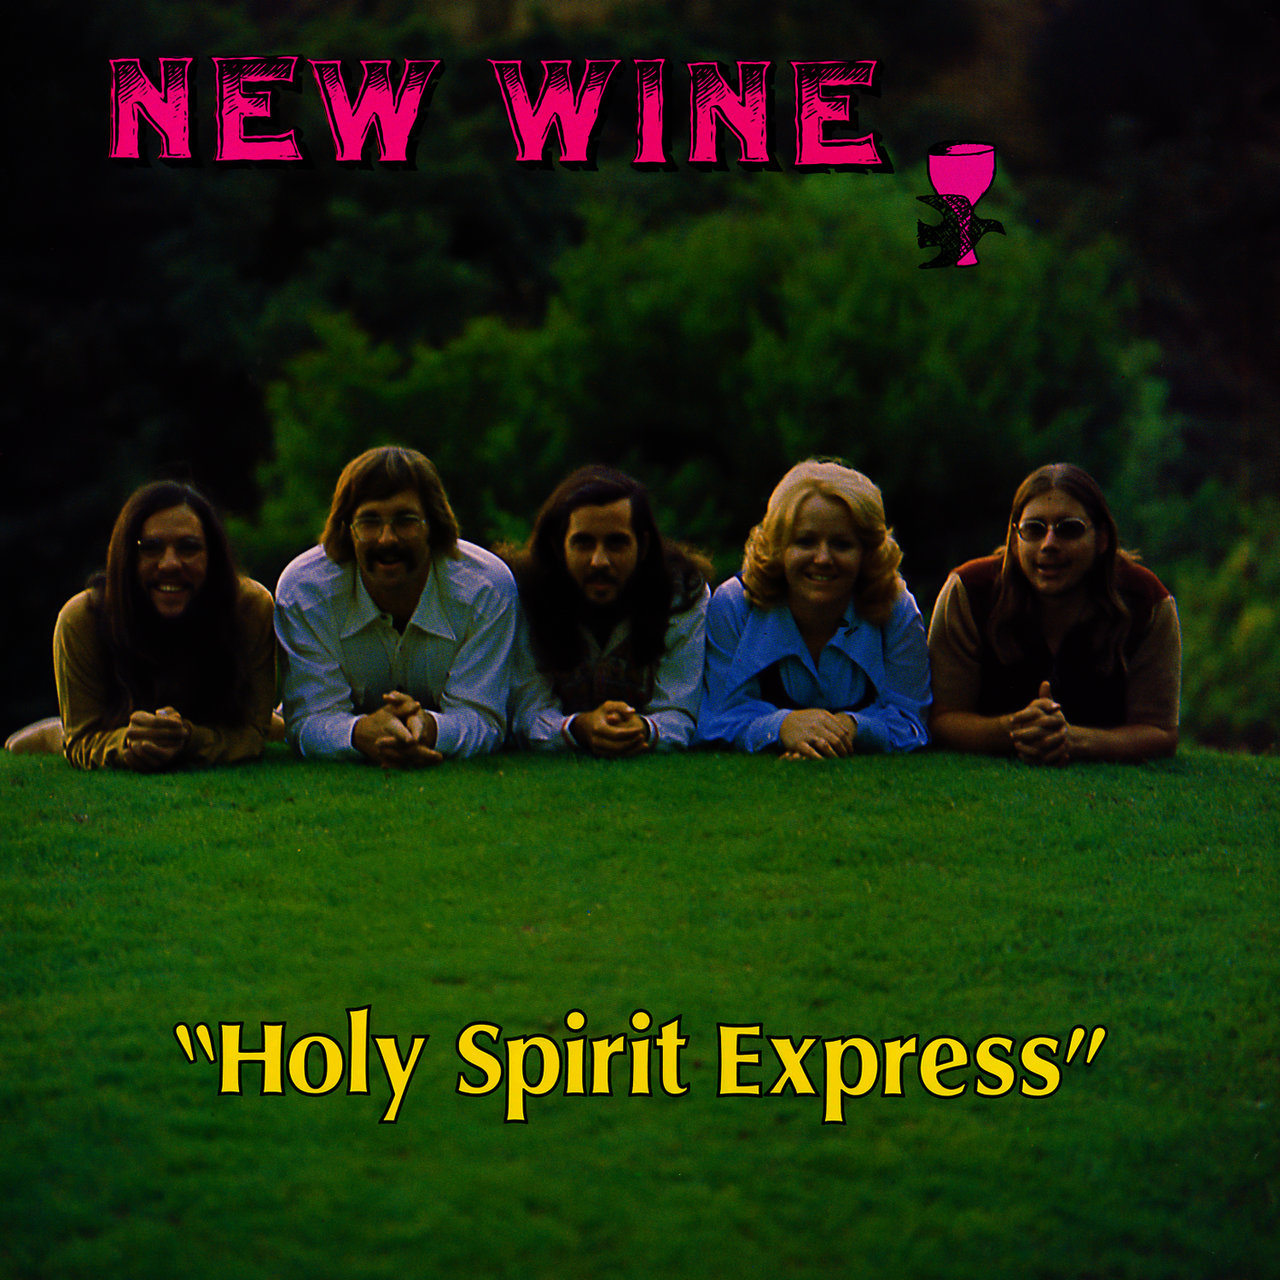 Holy Spirit Express